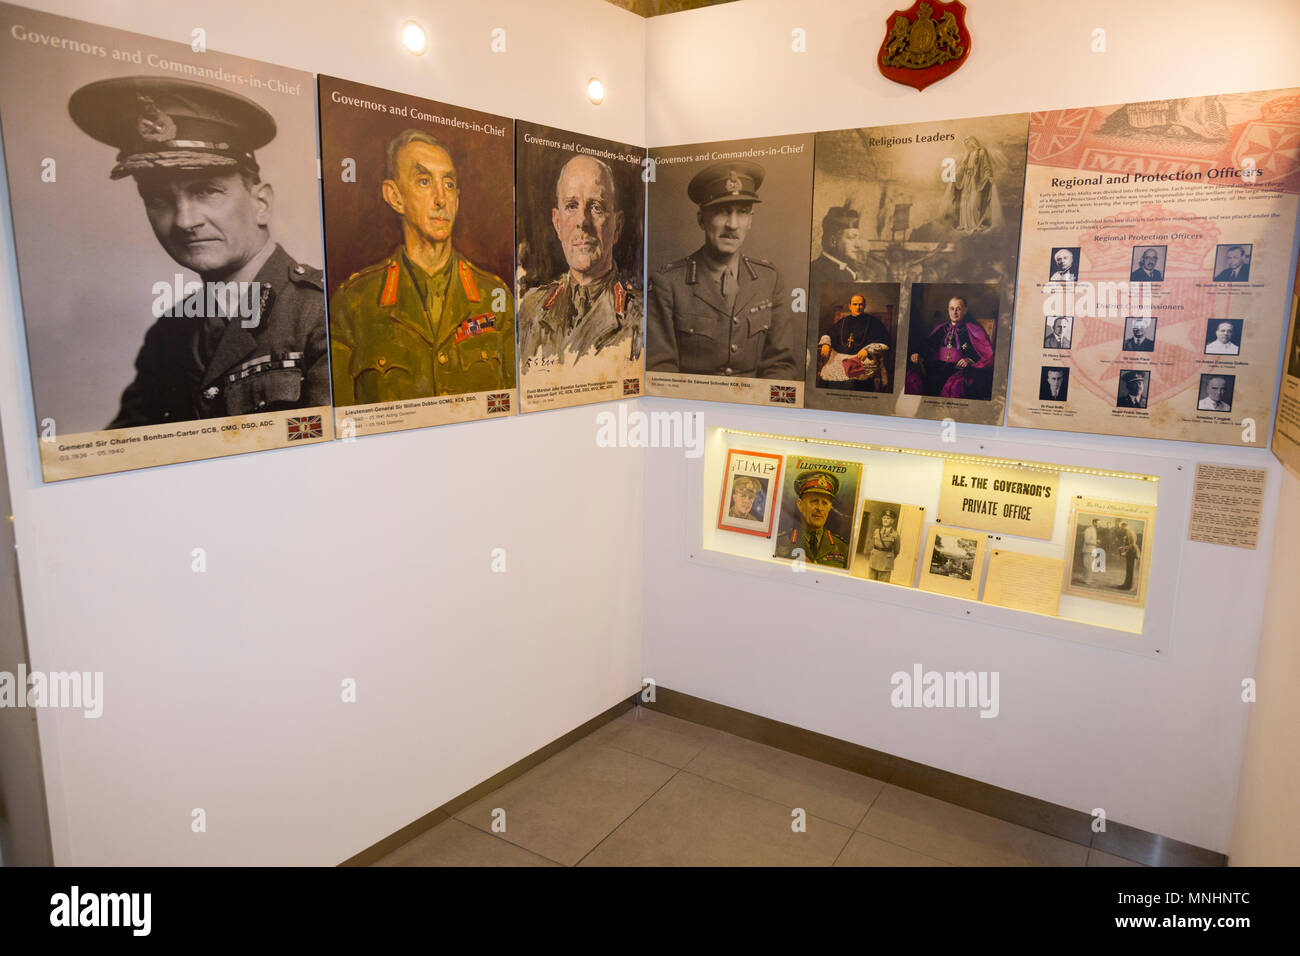 Governors and Commanders in Chief photographs on exhibit wall / display of exhibits inside the exhibition displayed at The Malta At War Museum, Malta - Stock Image